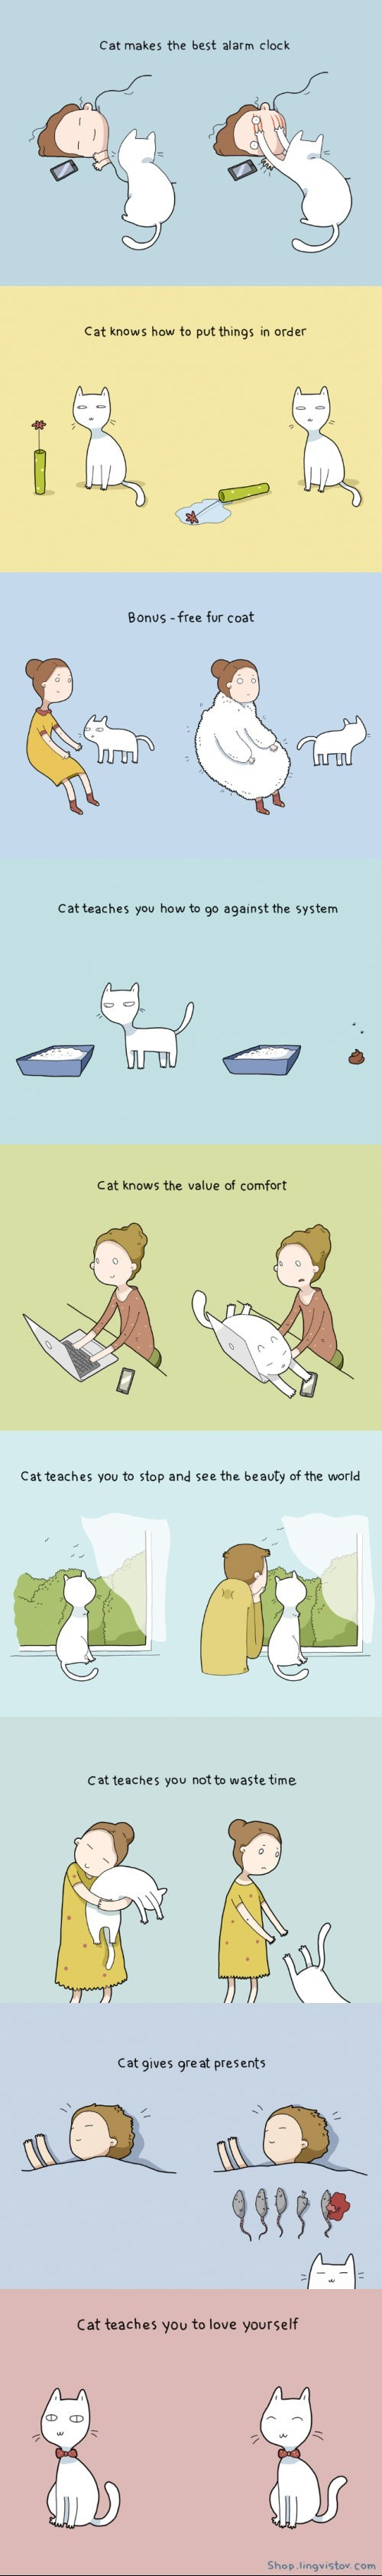 funny-web-comics-10-benefits-of-having-a-cat